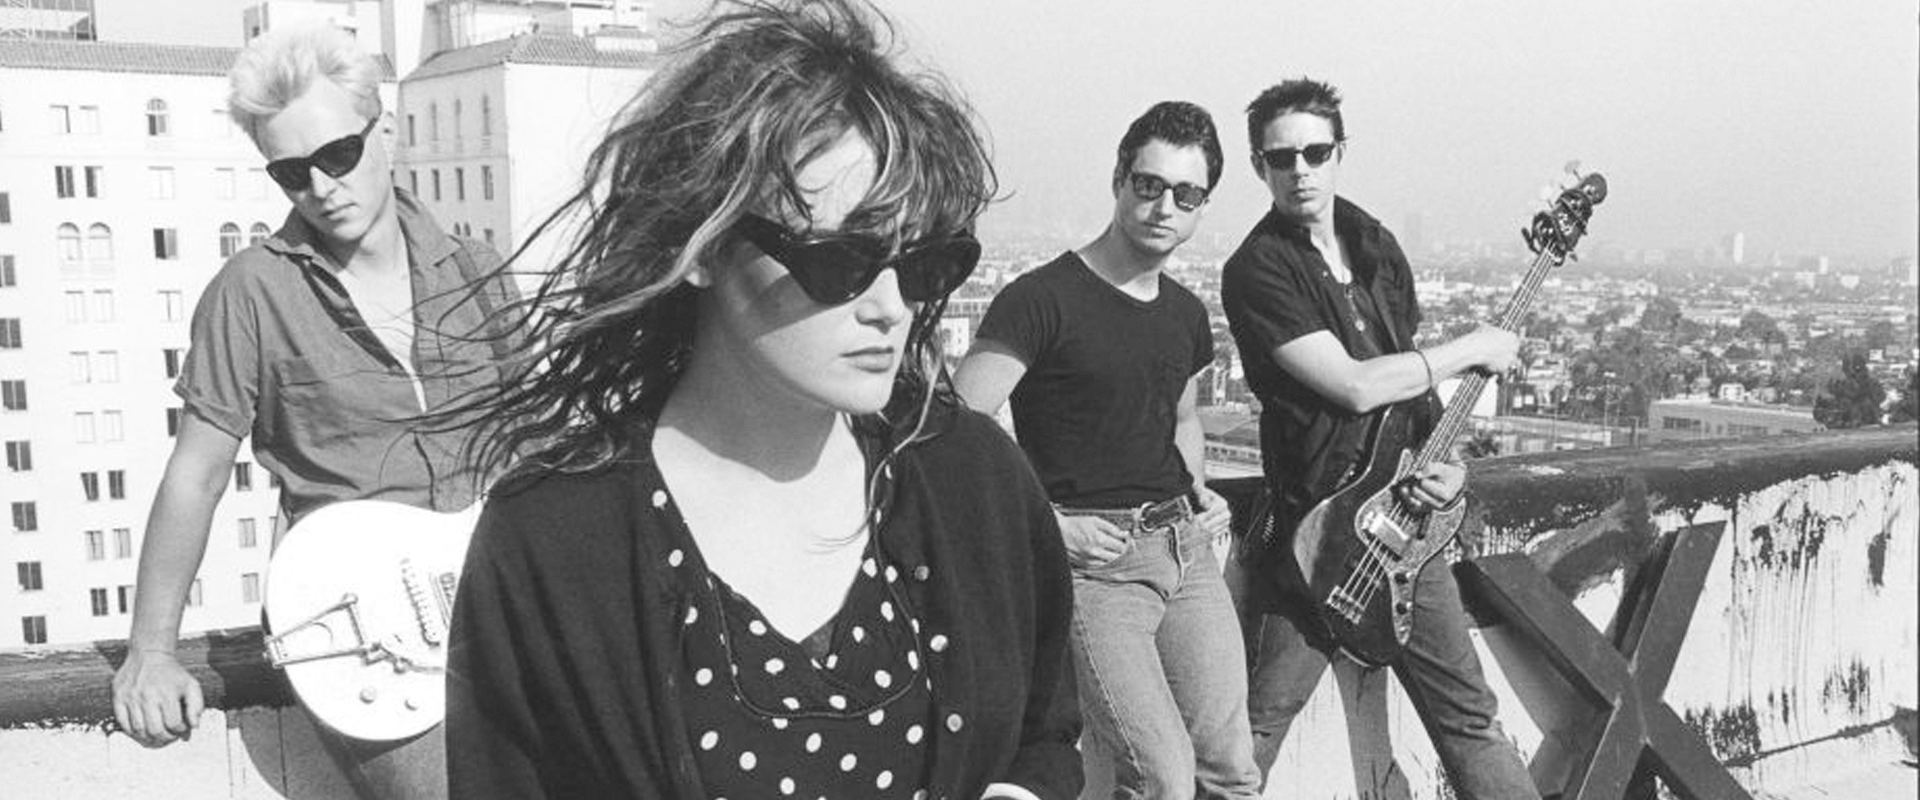 Revisit: X: 40 YEARS OF PUNK IN LOS ANGELES